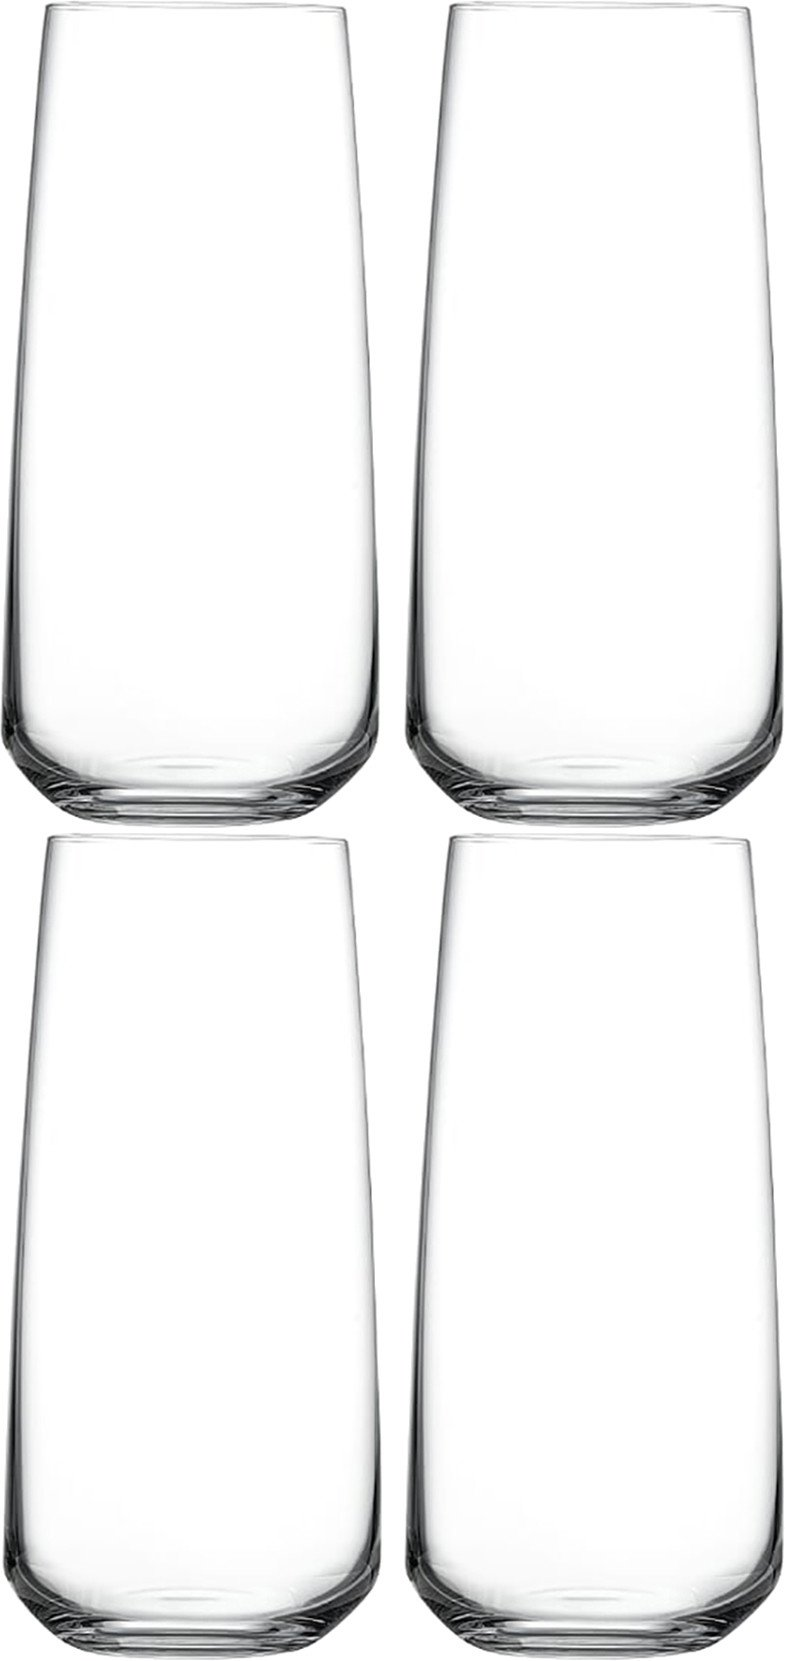 Set of Four Mirage Long Drink Glasses for Nude Glass